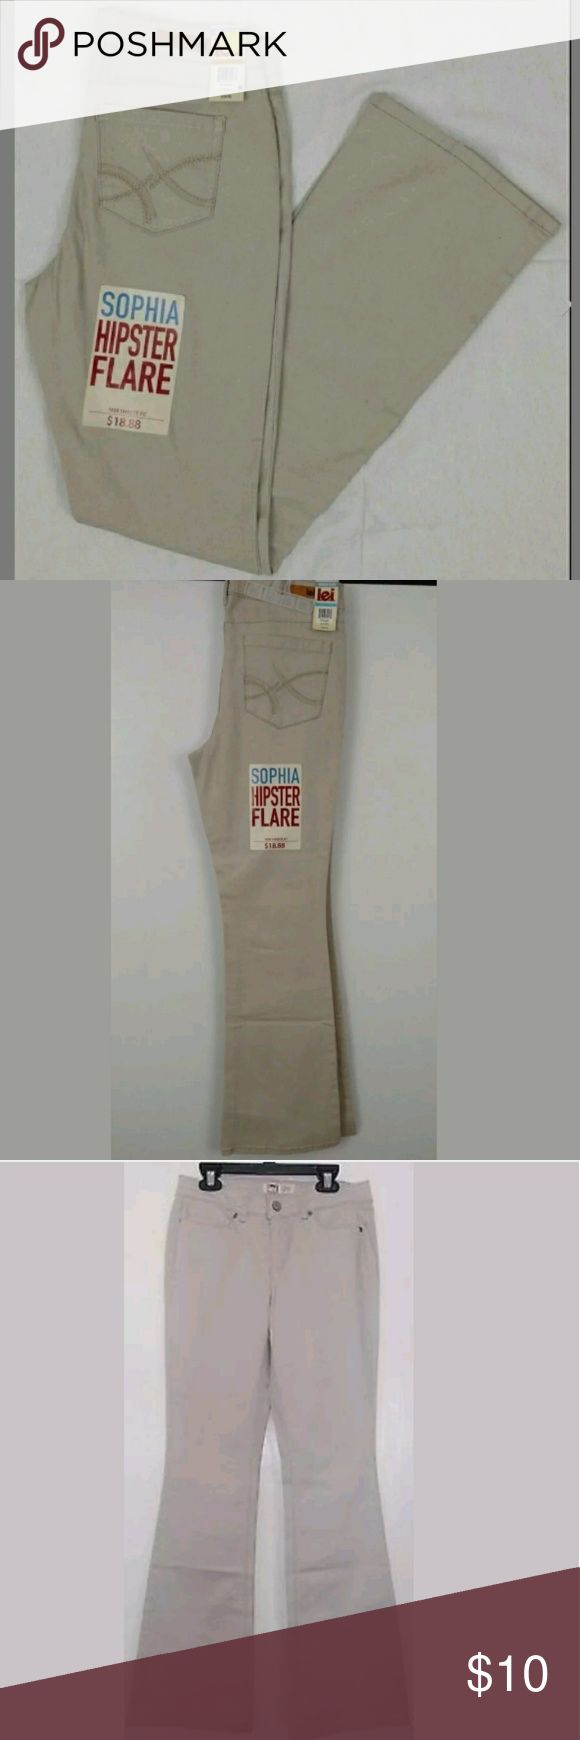 """Junior Girls School Pants L.E.I. Sophia Hipsters Juniors Khaki Flared Jeans / Pants(Junior Girls)   Size 3   Inseam: 31.5""""   Brand new with tags.   Great for casual wear, school uniforms, or dressy casual wear! l.e.i Pants Boot Cut & Flare"""